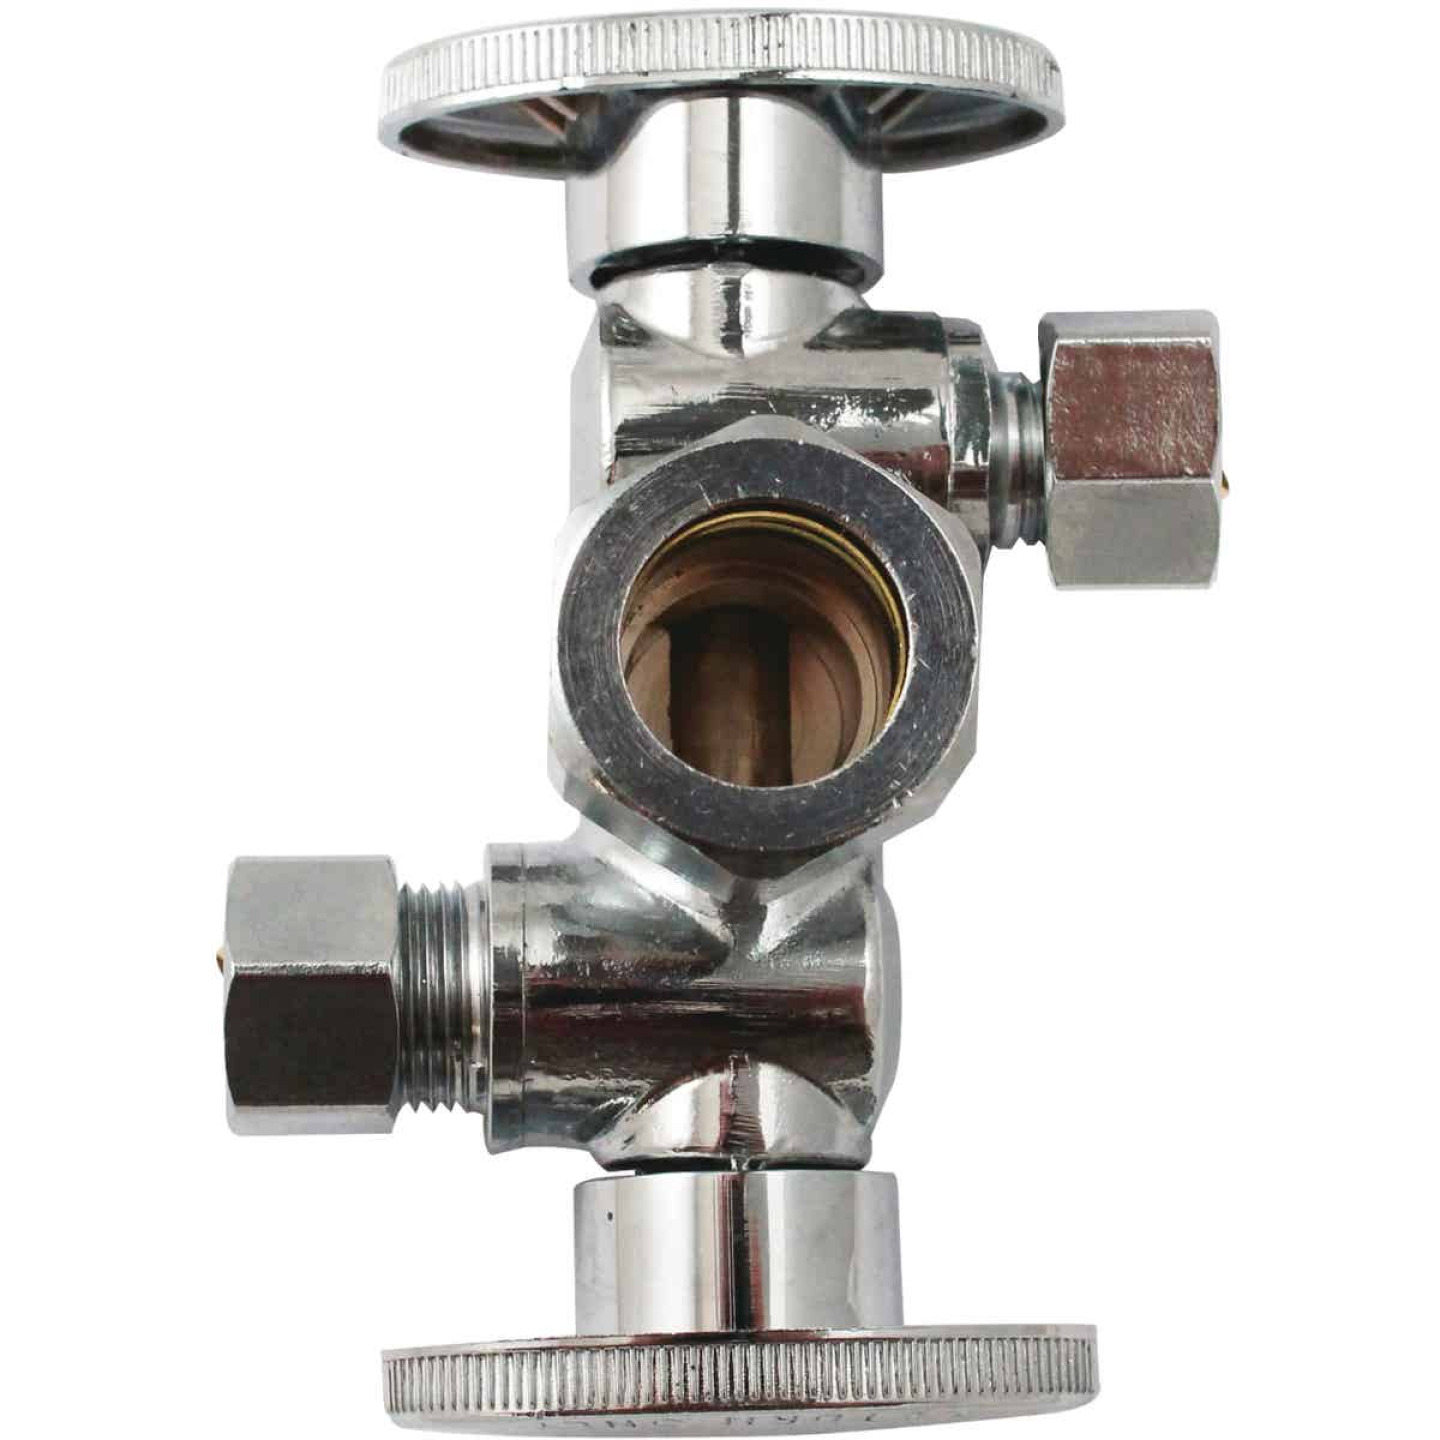 "Keeey 5/8"" OD x 3/8"" OD x 3/8"" OD Quarter Turn Dual Shut-Off/Dual Outlet Valve Image 1"